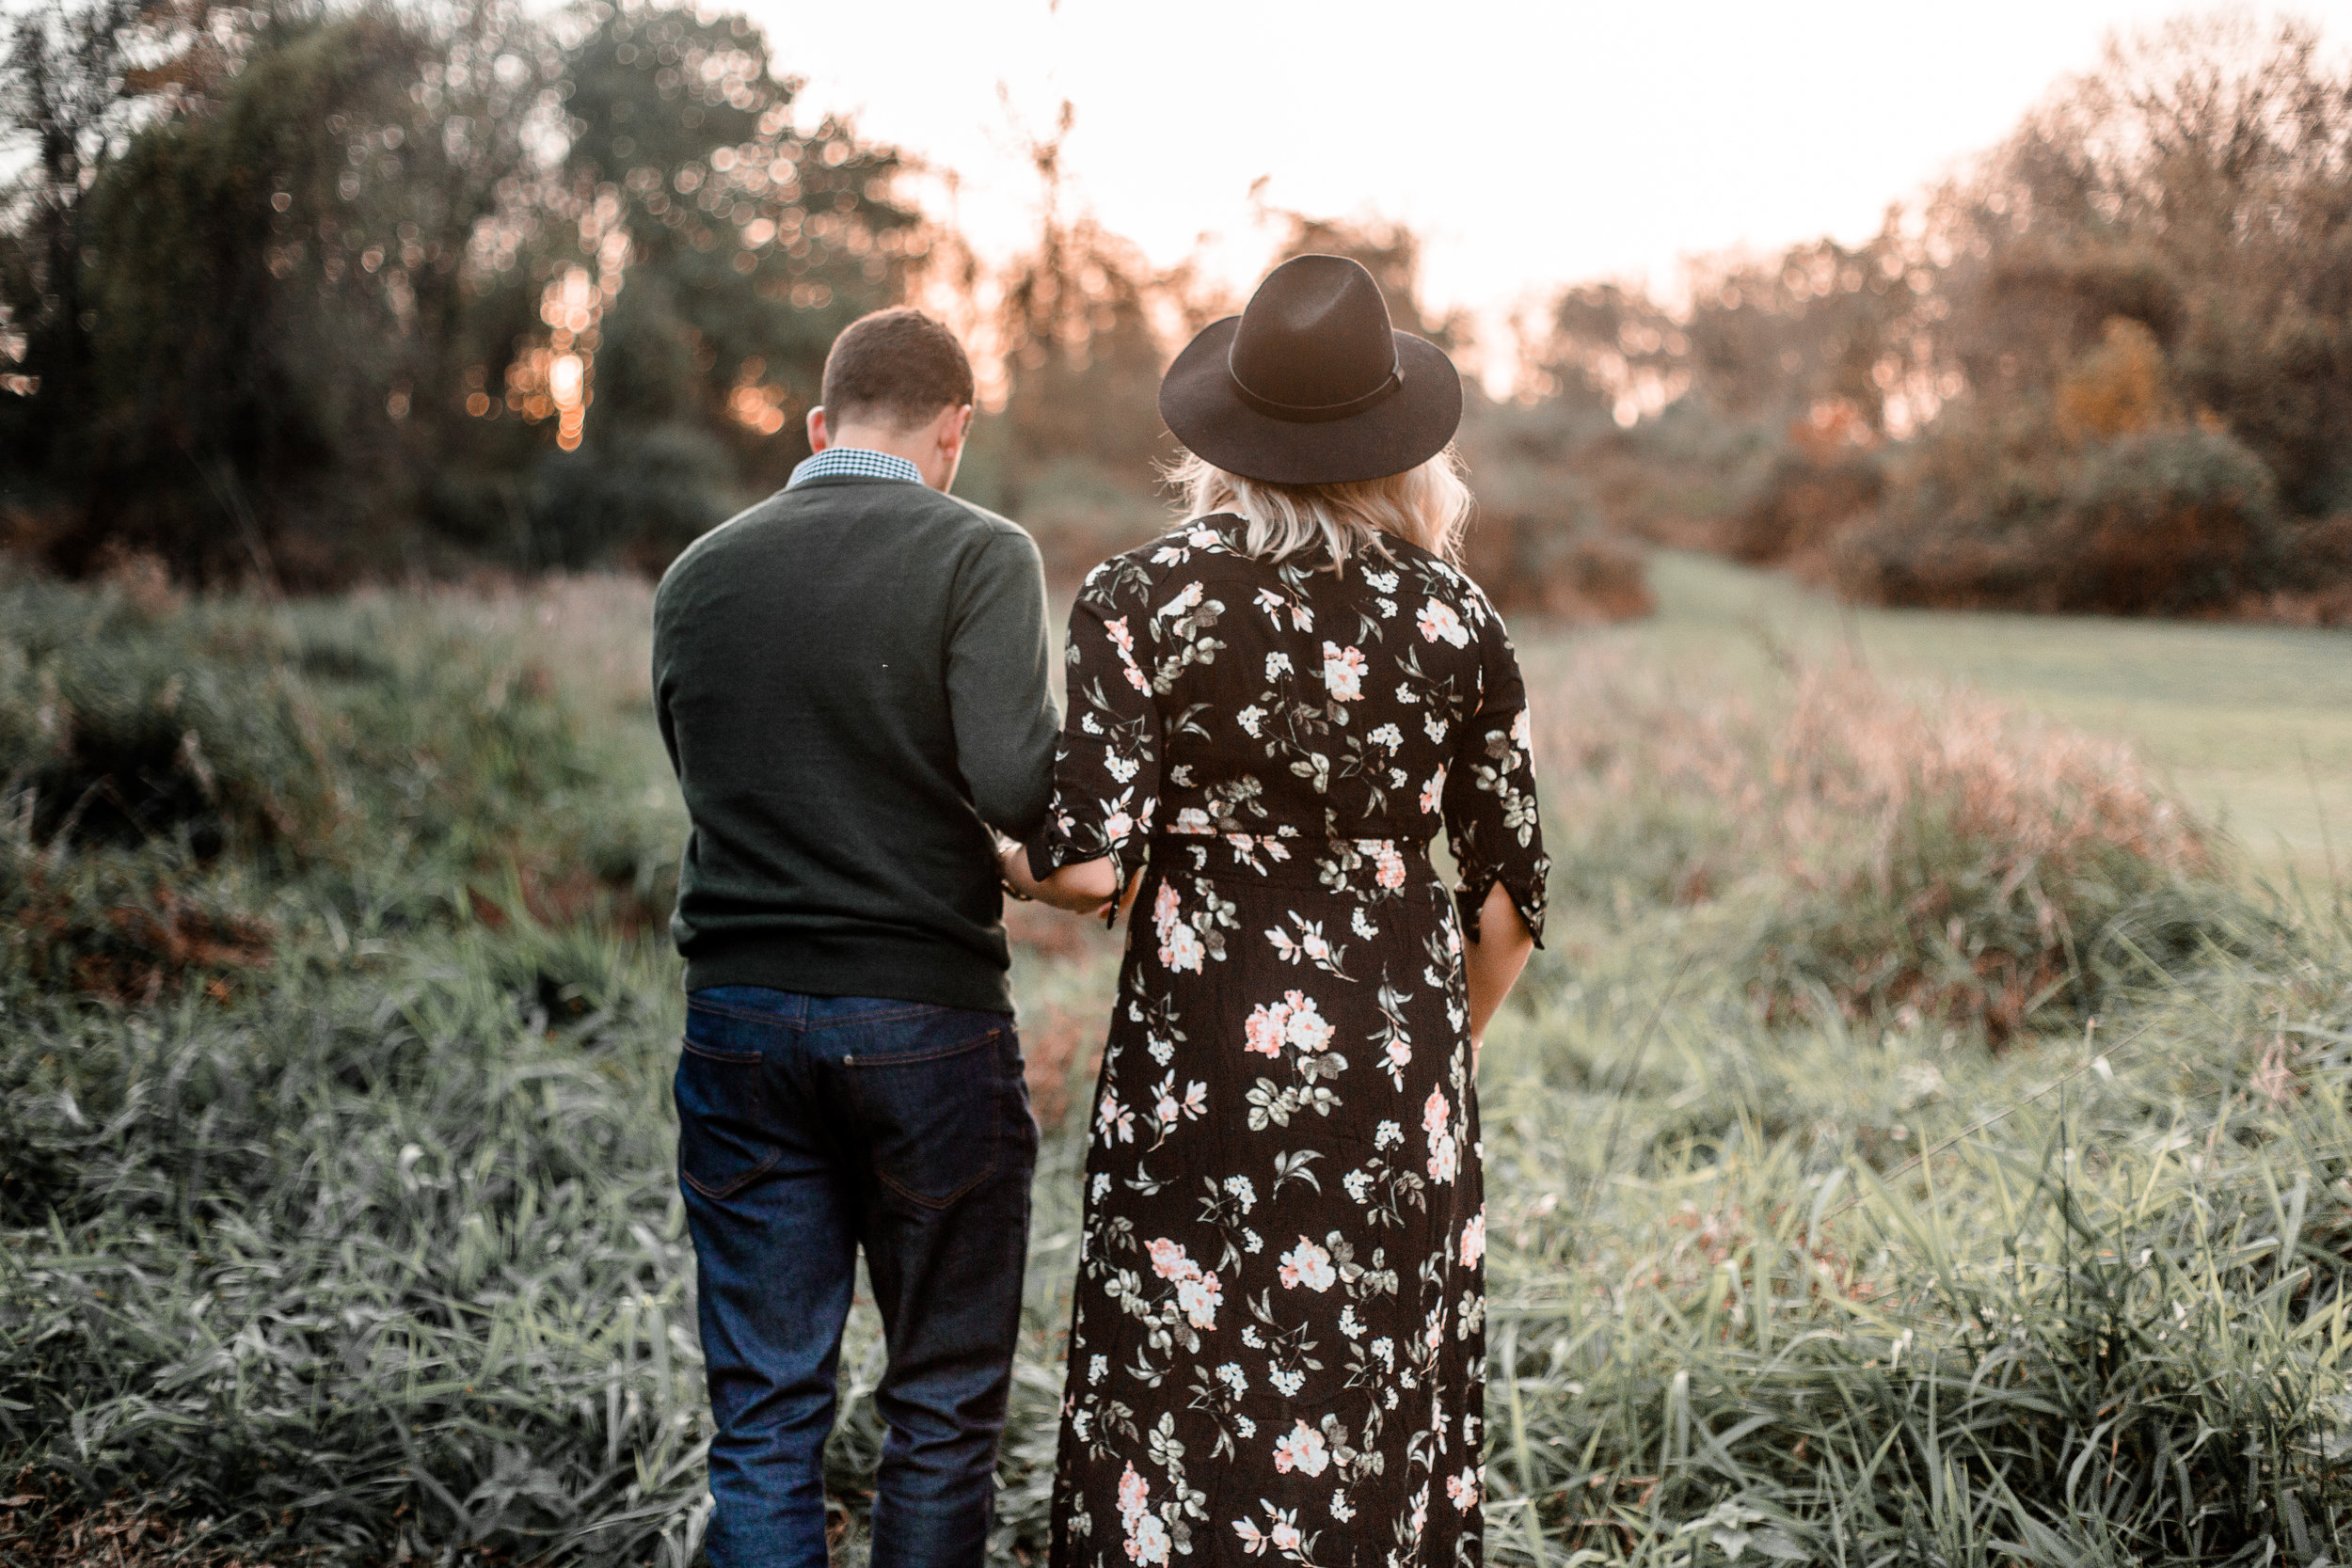 nicole-daacke-photography-carefree-bohemian-lancaster-pa-pennsylvania-engagement-photos-engagement-session-golden-sunset-adventure-session-in-lancaster-pa-lancaster-pa-outdoor-wedding-photographer-31.jpg